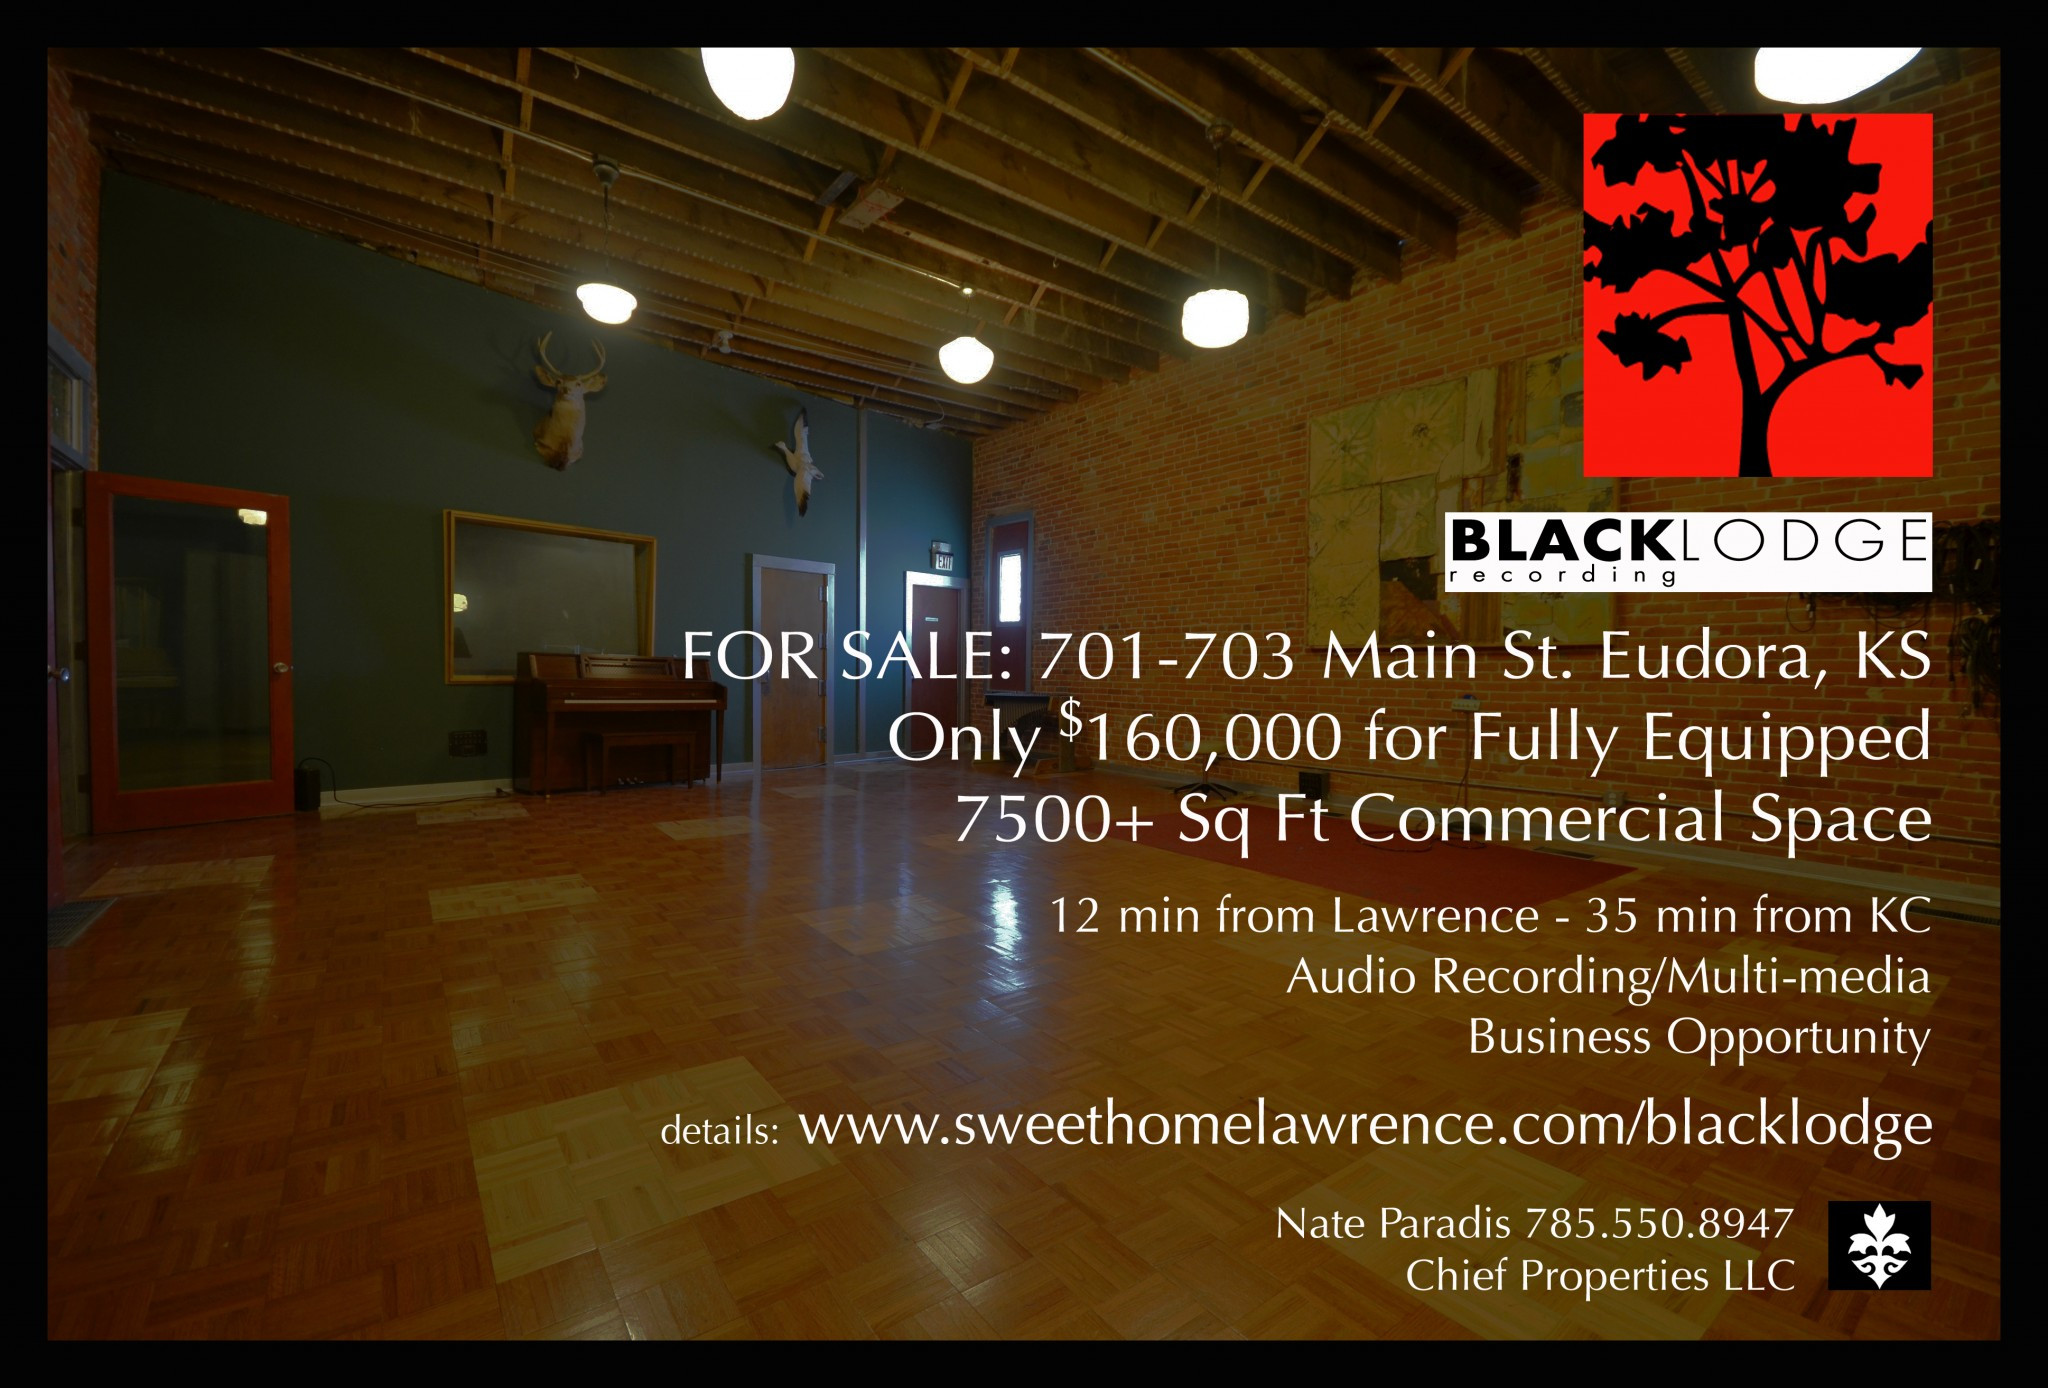 hardwood flooring business for sale of sold black lodge recording studio • 701 703 main st eudora ks within currently home to renowned black lodge recording studio 701 703 main st in beautiful downtown eudora ks can be yours this site home of the historic